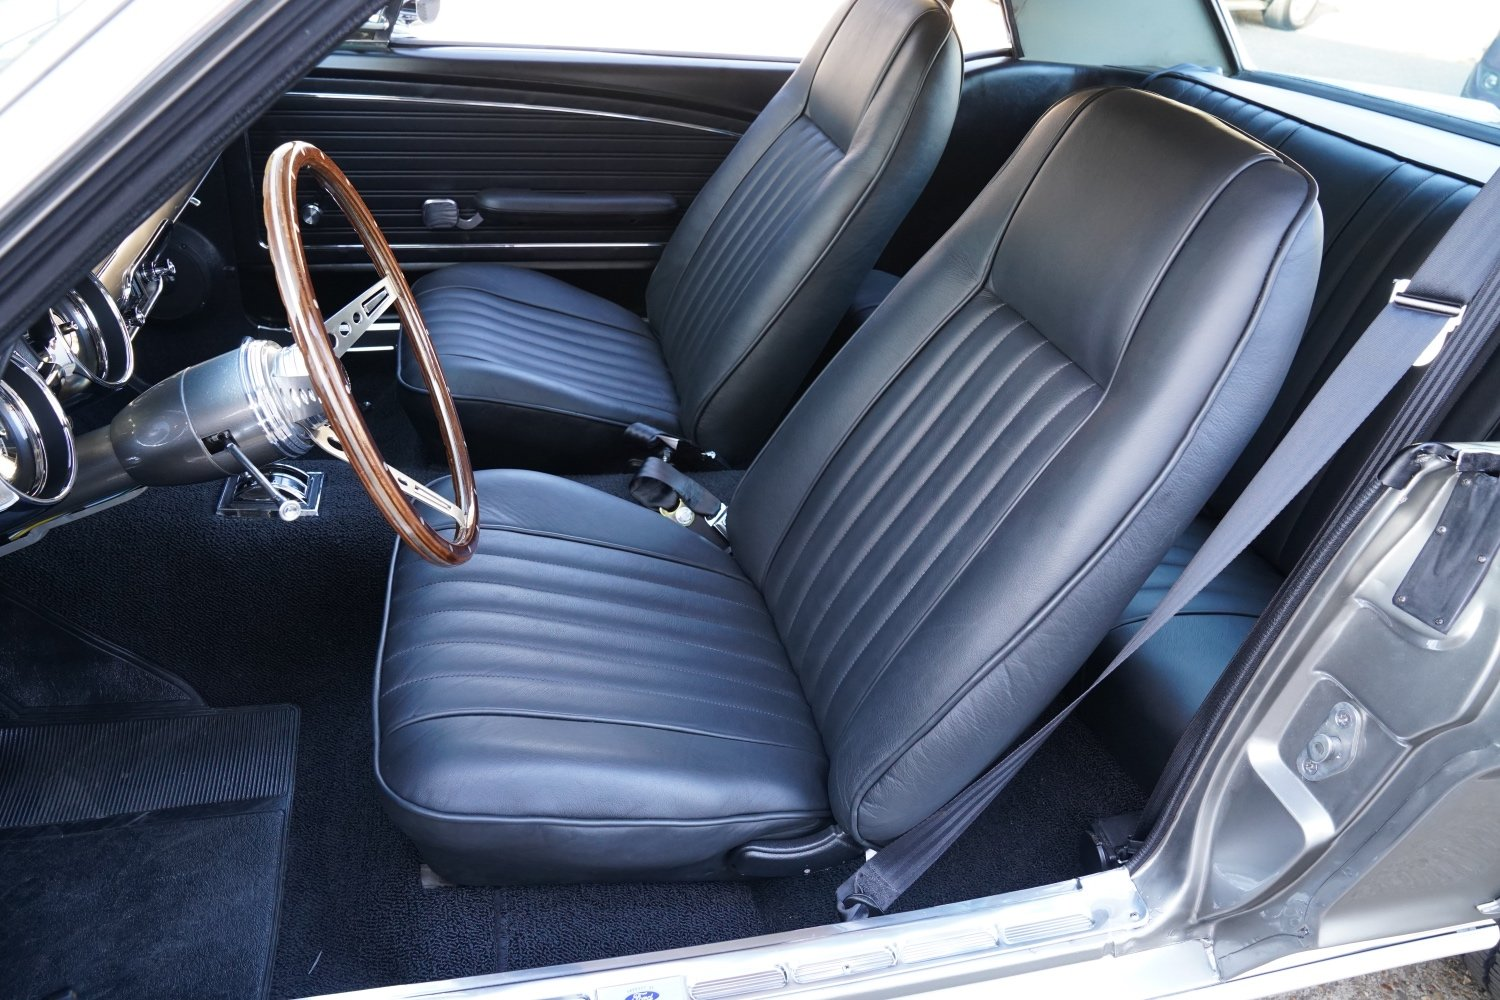 1968 Ford Mustang 289 Automatic V8 Restored & Upgraded SOLD (picture 5 of 6)